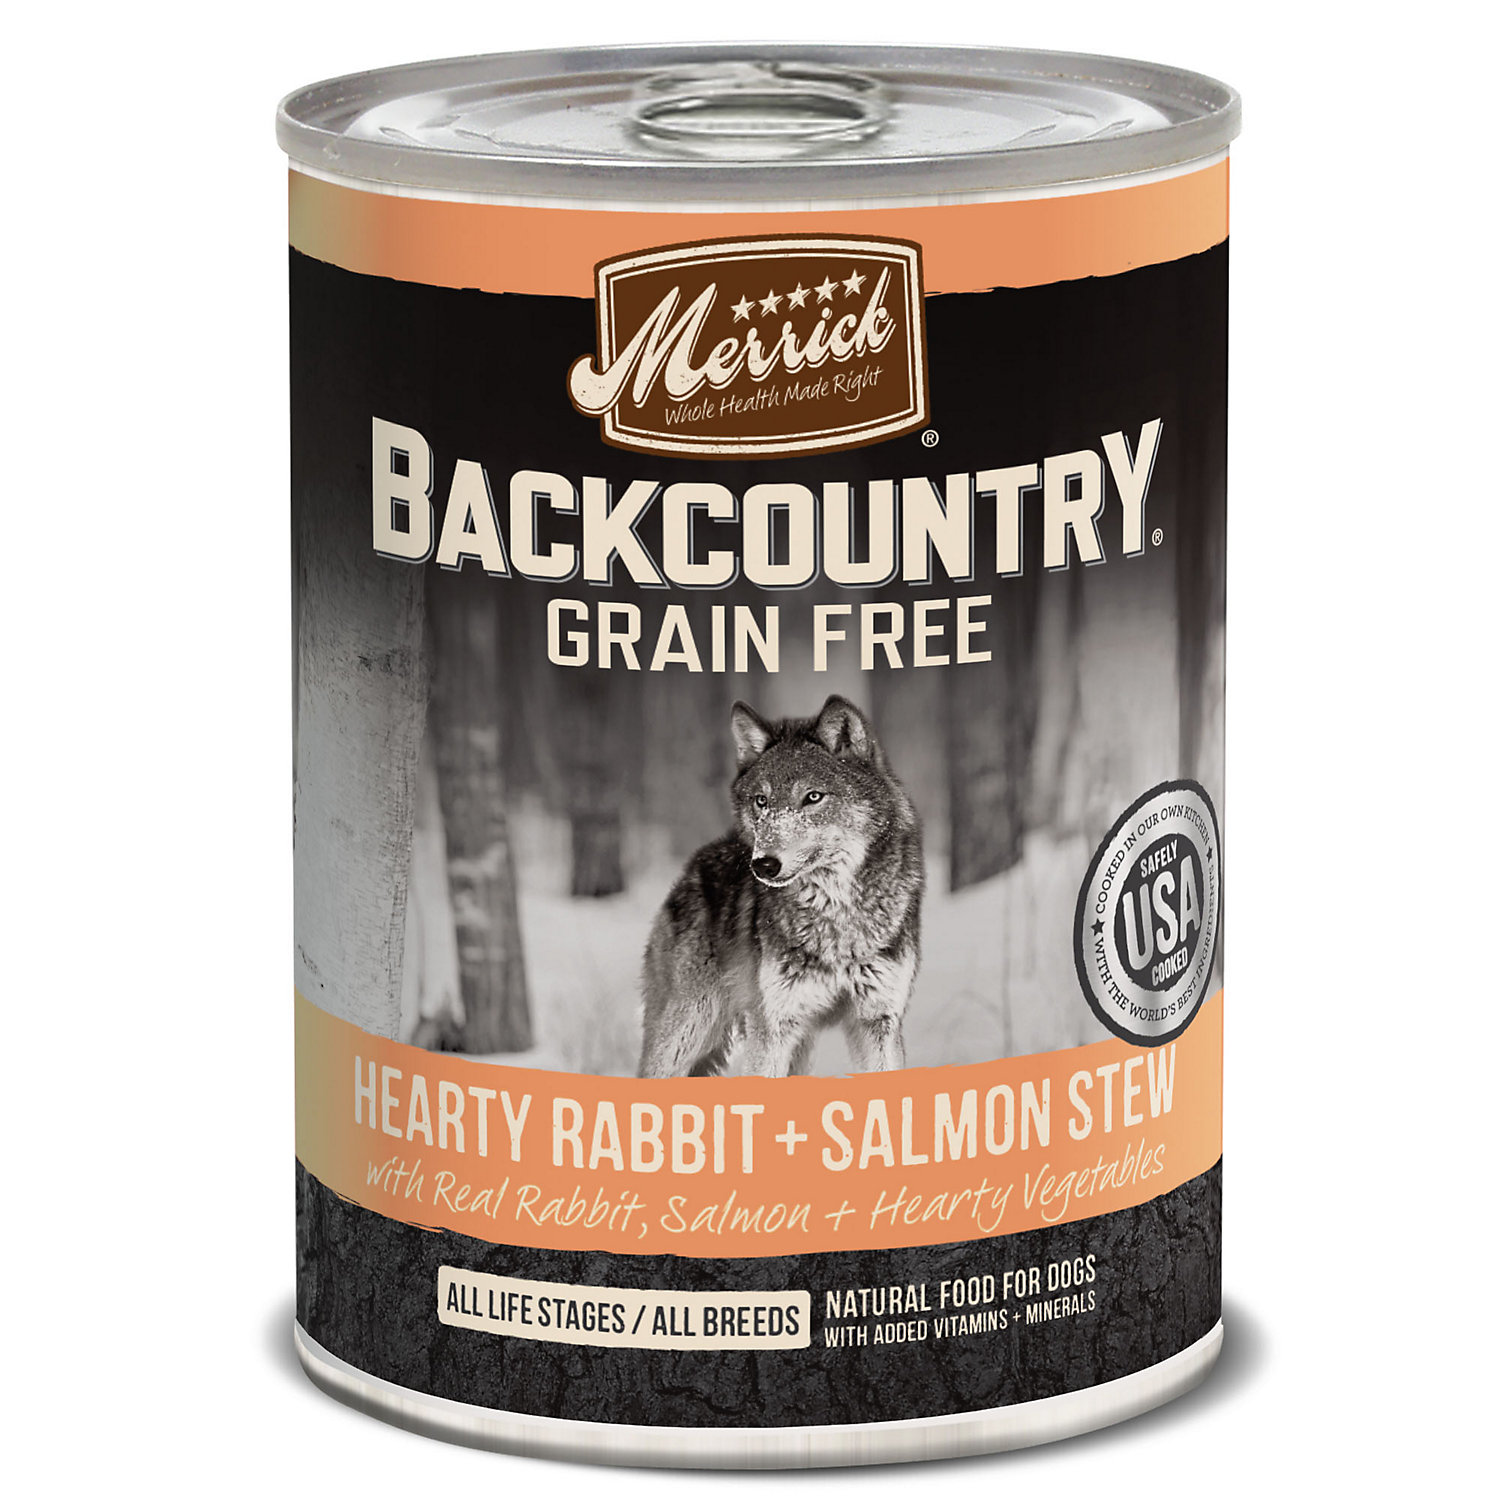 Merrick Backcountry Hearty Salmon Stew Grain Free Wet Dog Food